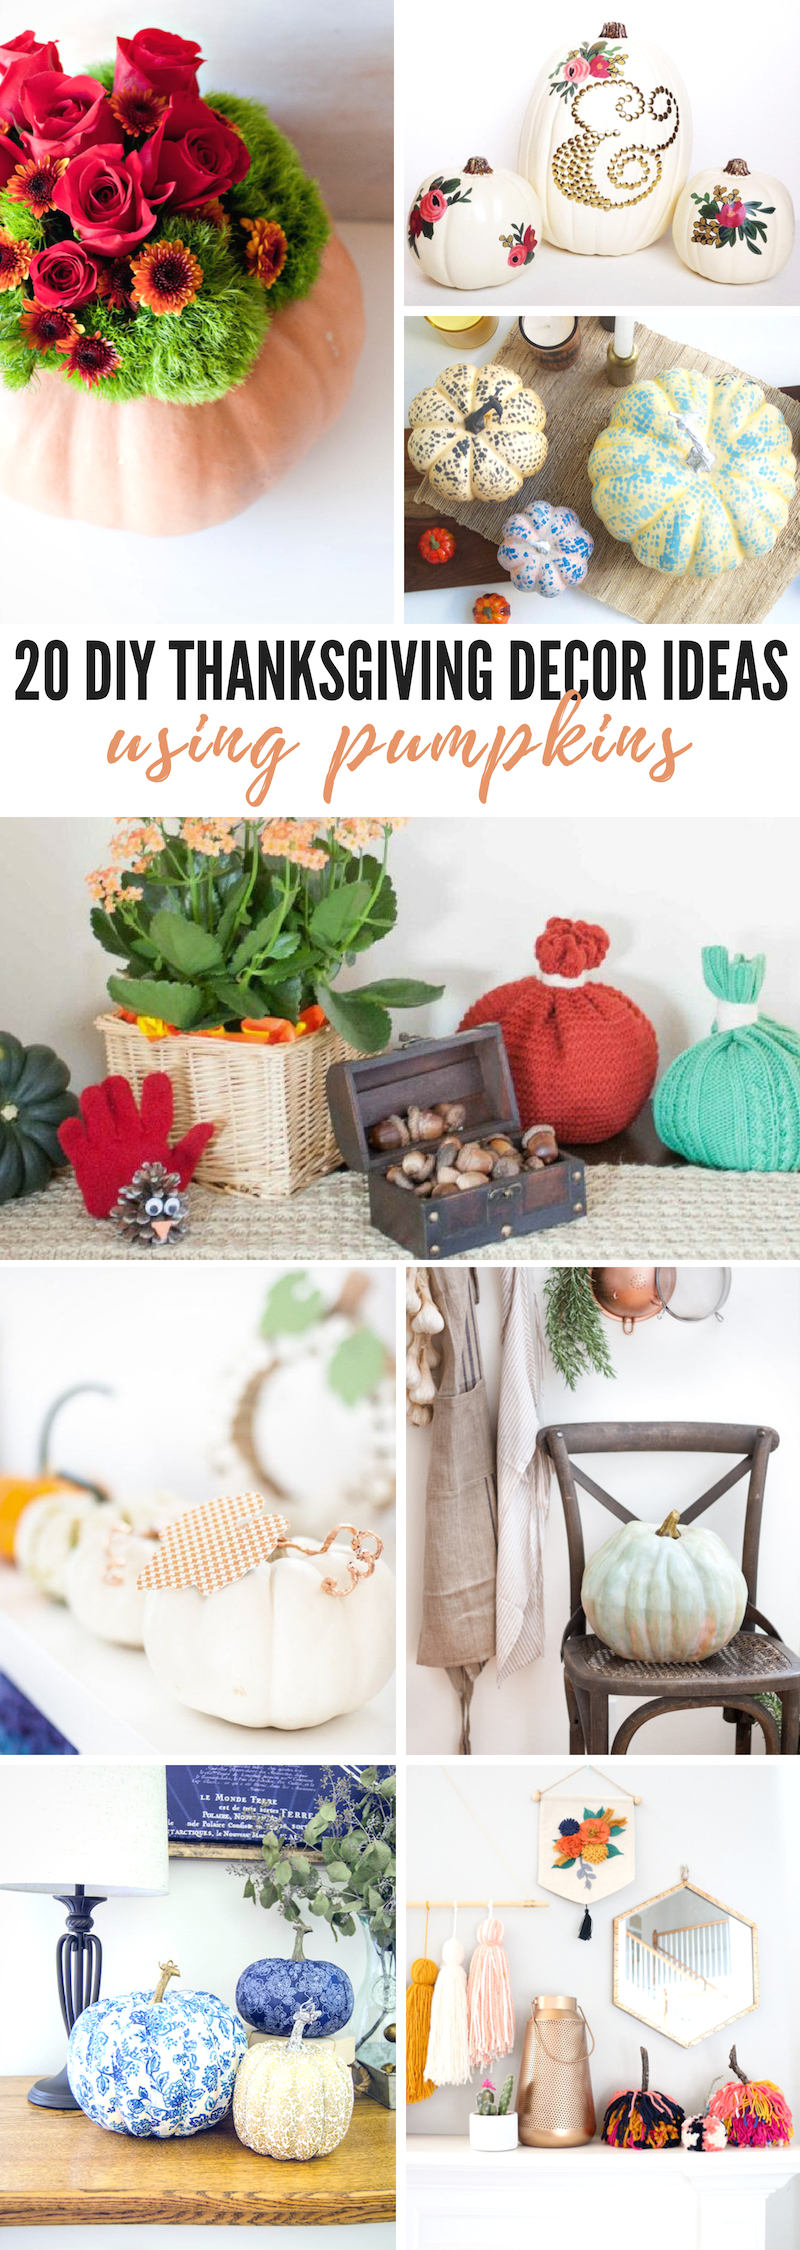 DIY Thanksgiving Decor Ideas Using Pumpkins